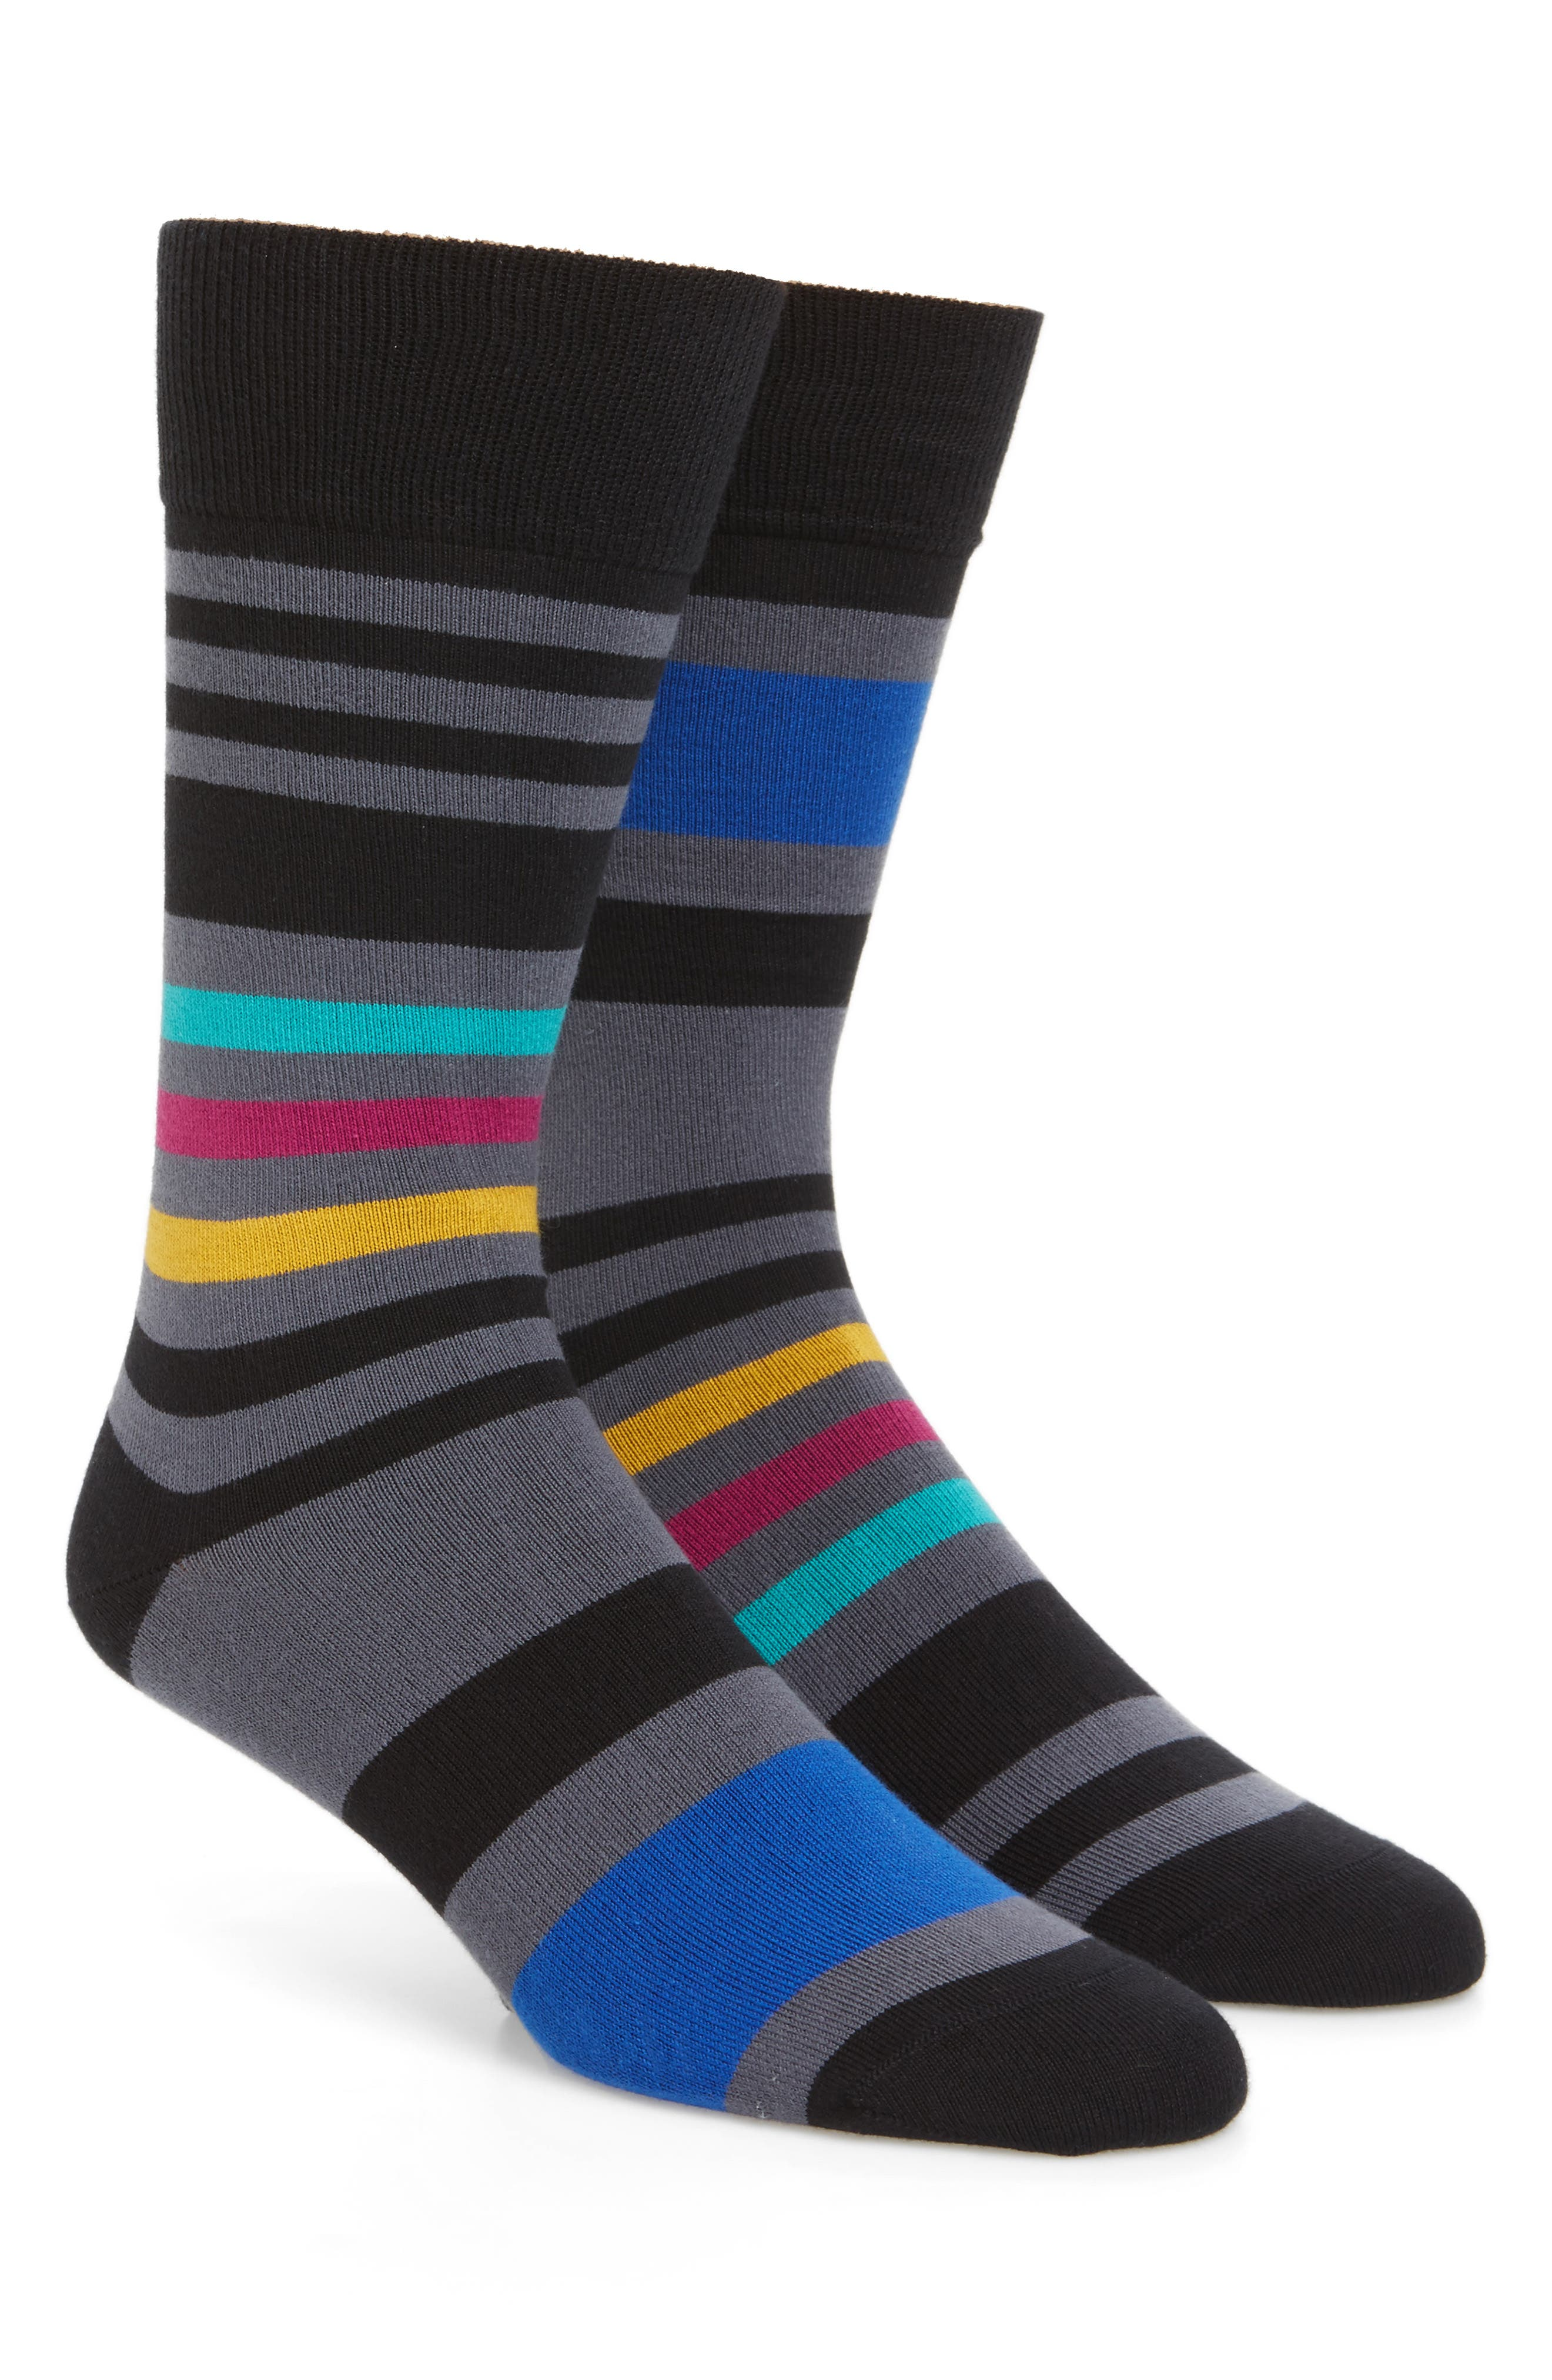 Main Image - Paul Smith Odd Block Stripe Socks